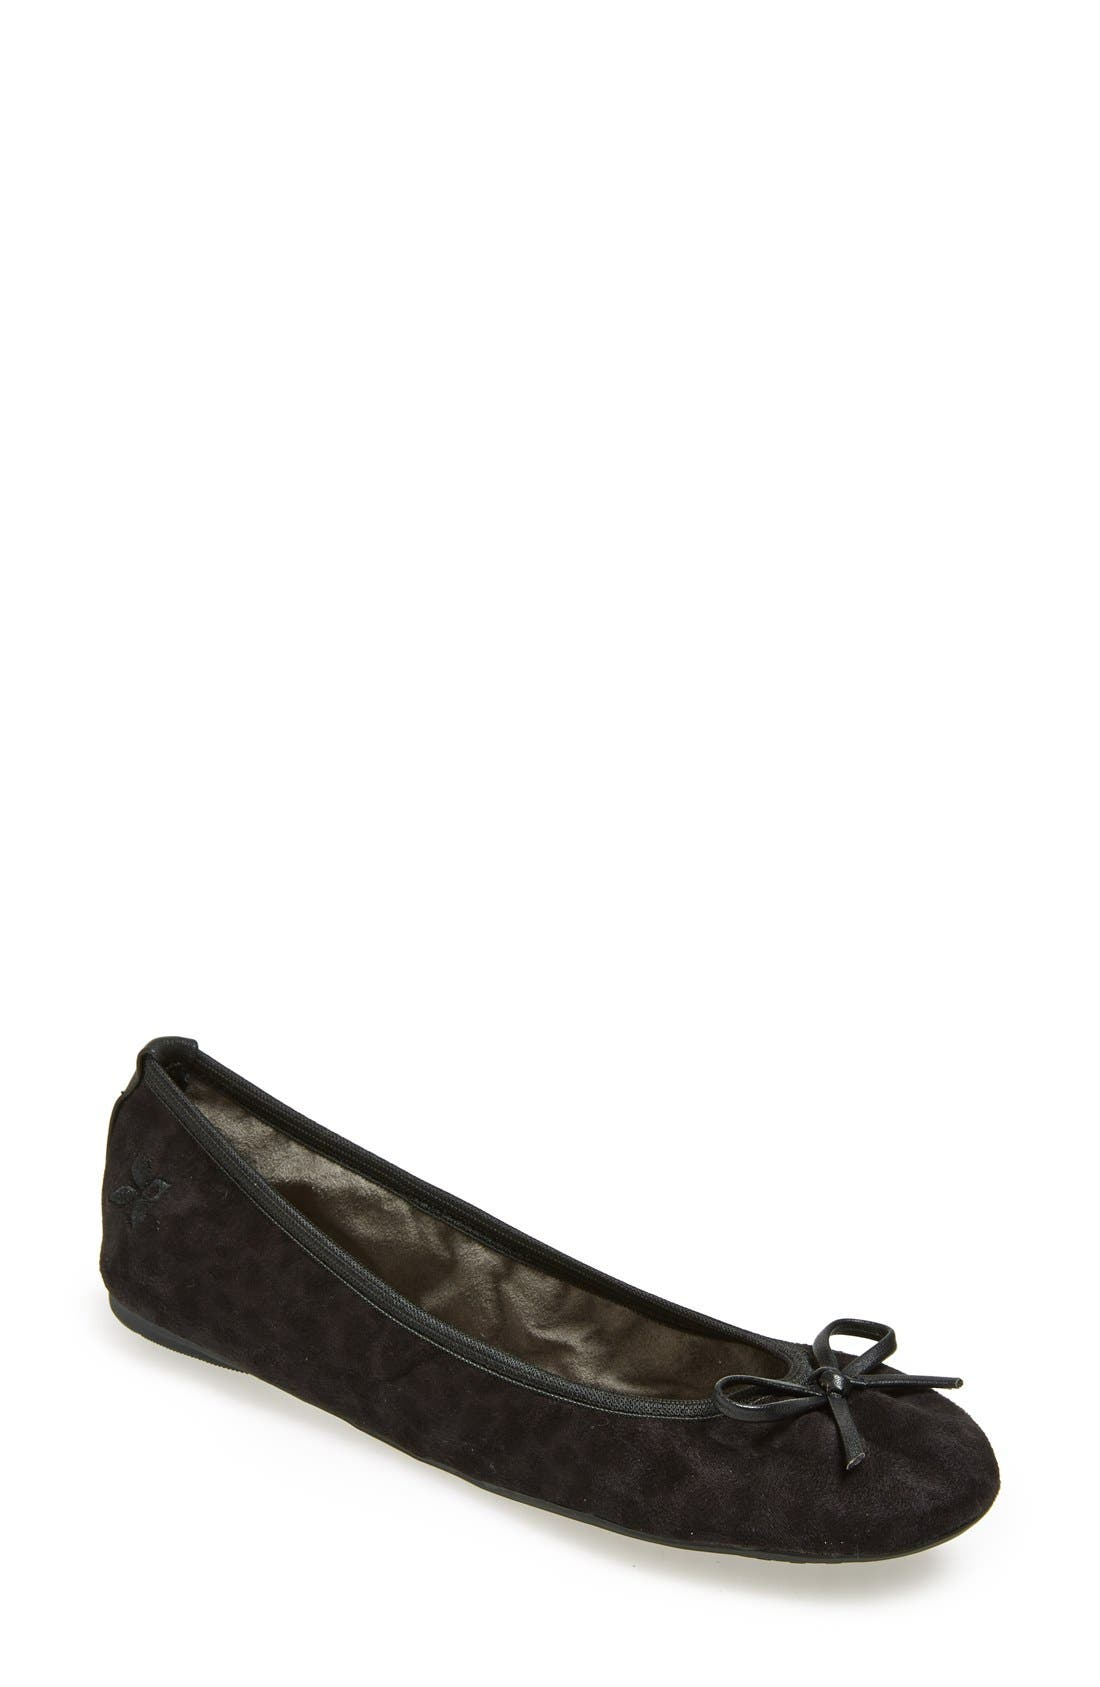 Main Image - Butterfly Twists 'Cece Leopard' Folding Ballerina Flat (Women)